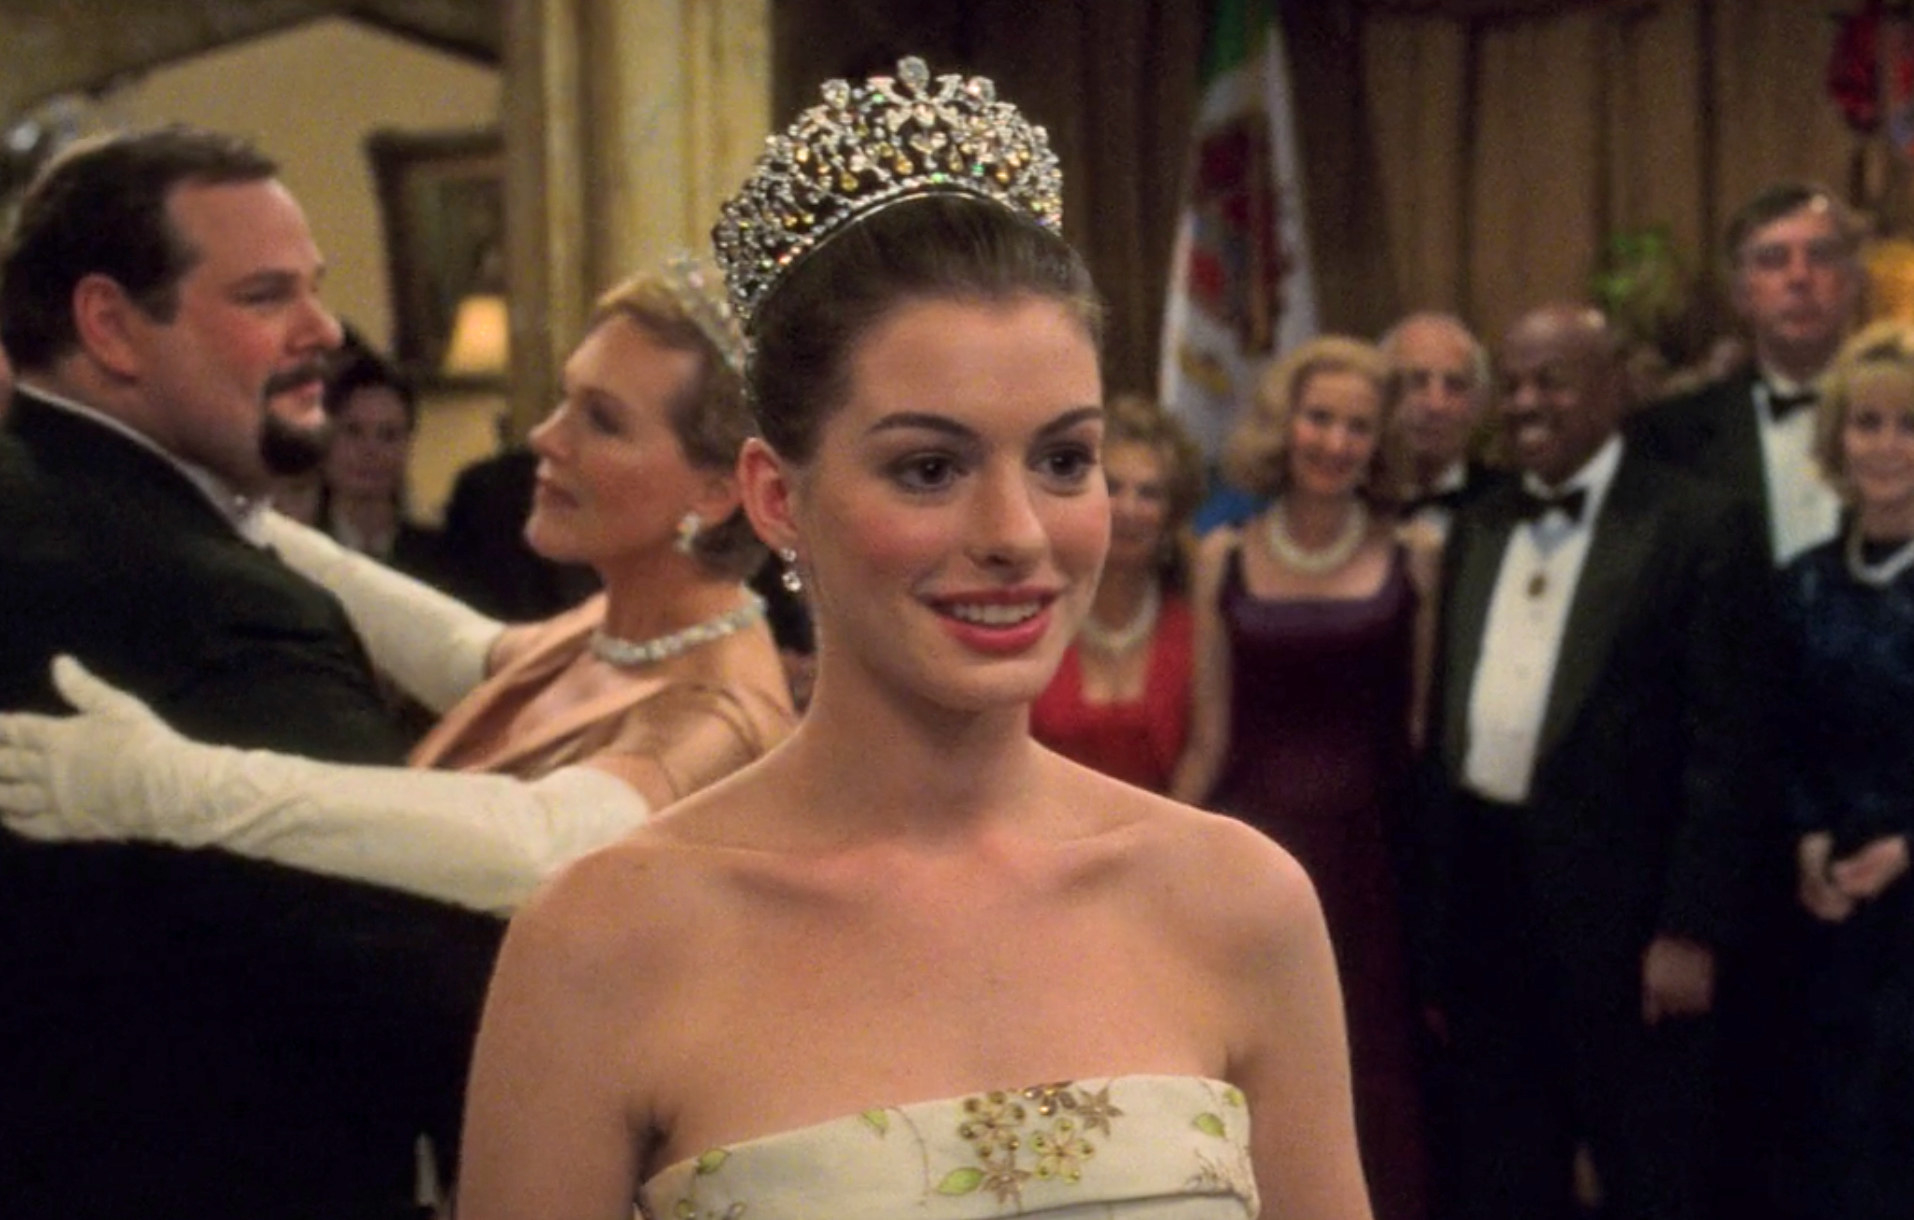 Mia stands in the middle of the room wearing a crown and gown and soft smile